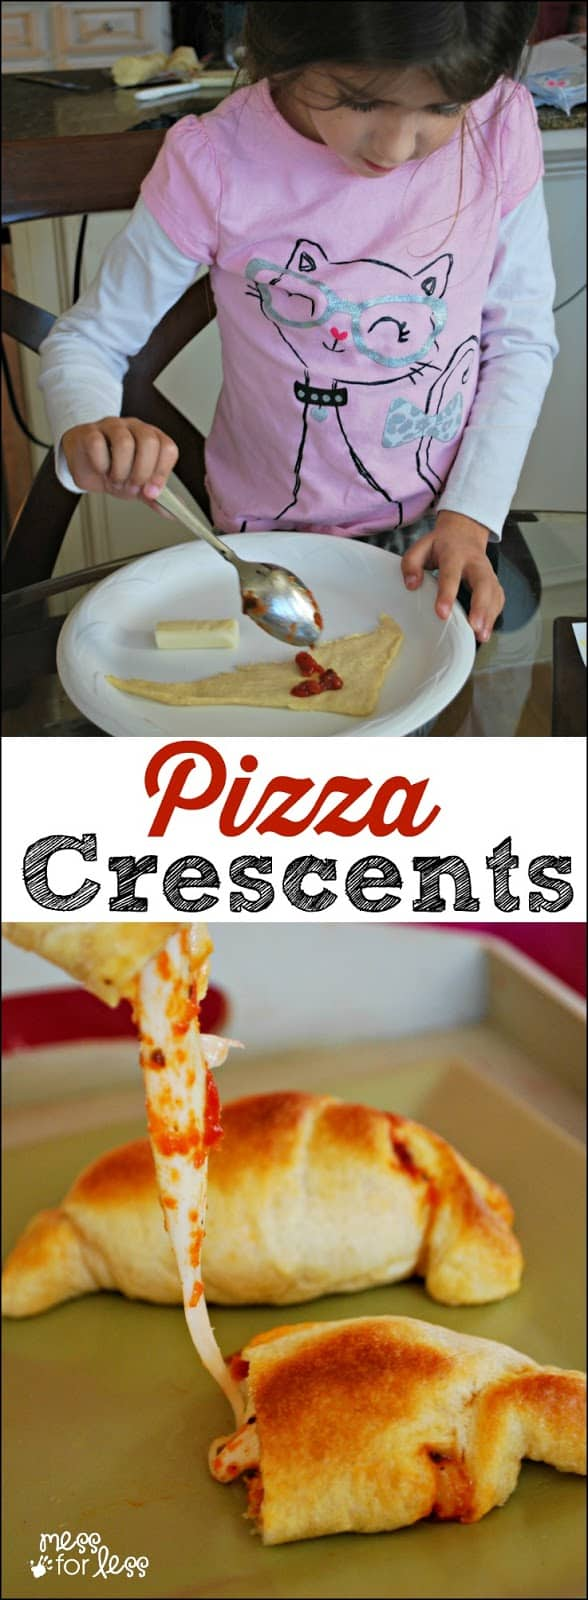 Crescent Roll Recipes: Pizza Crescents - Mess for Less